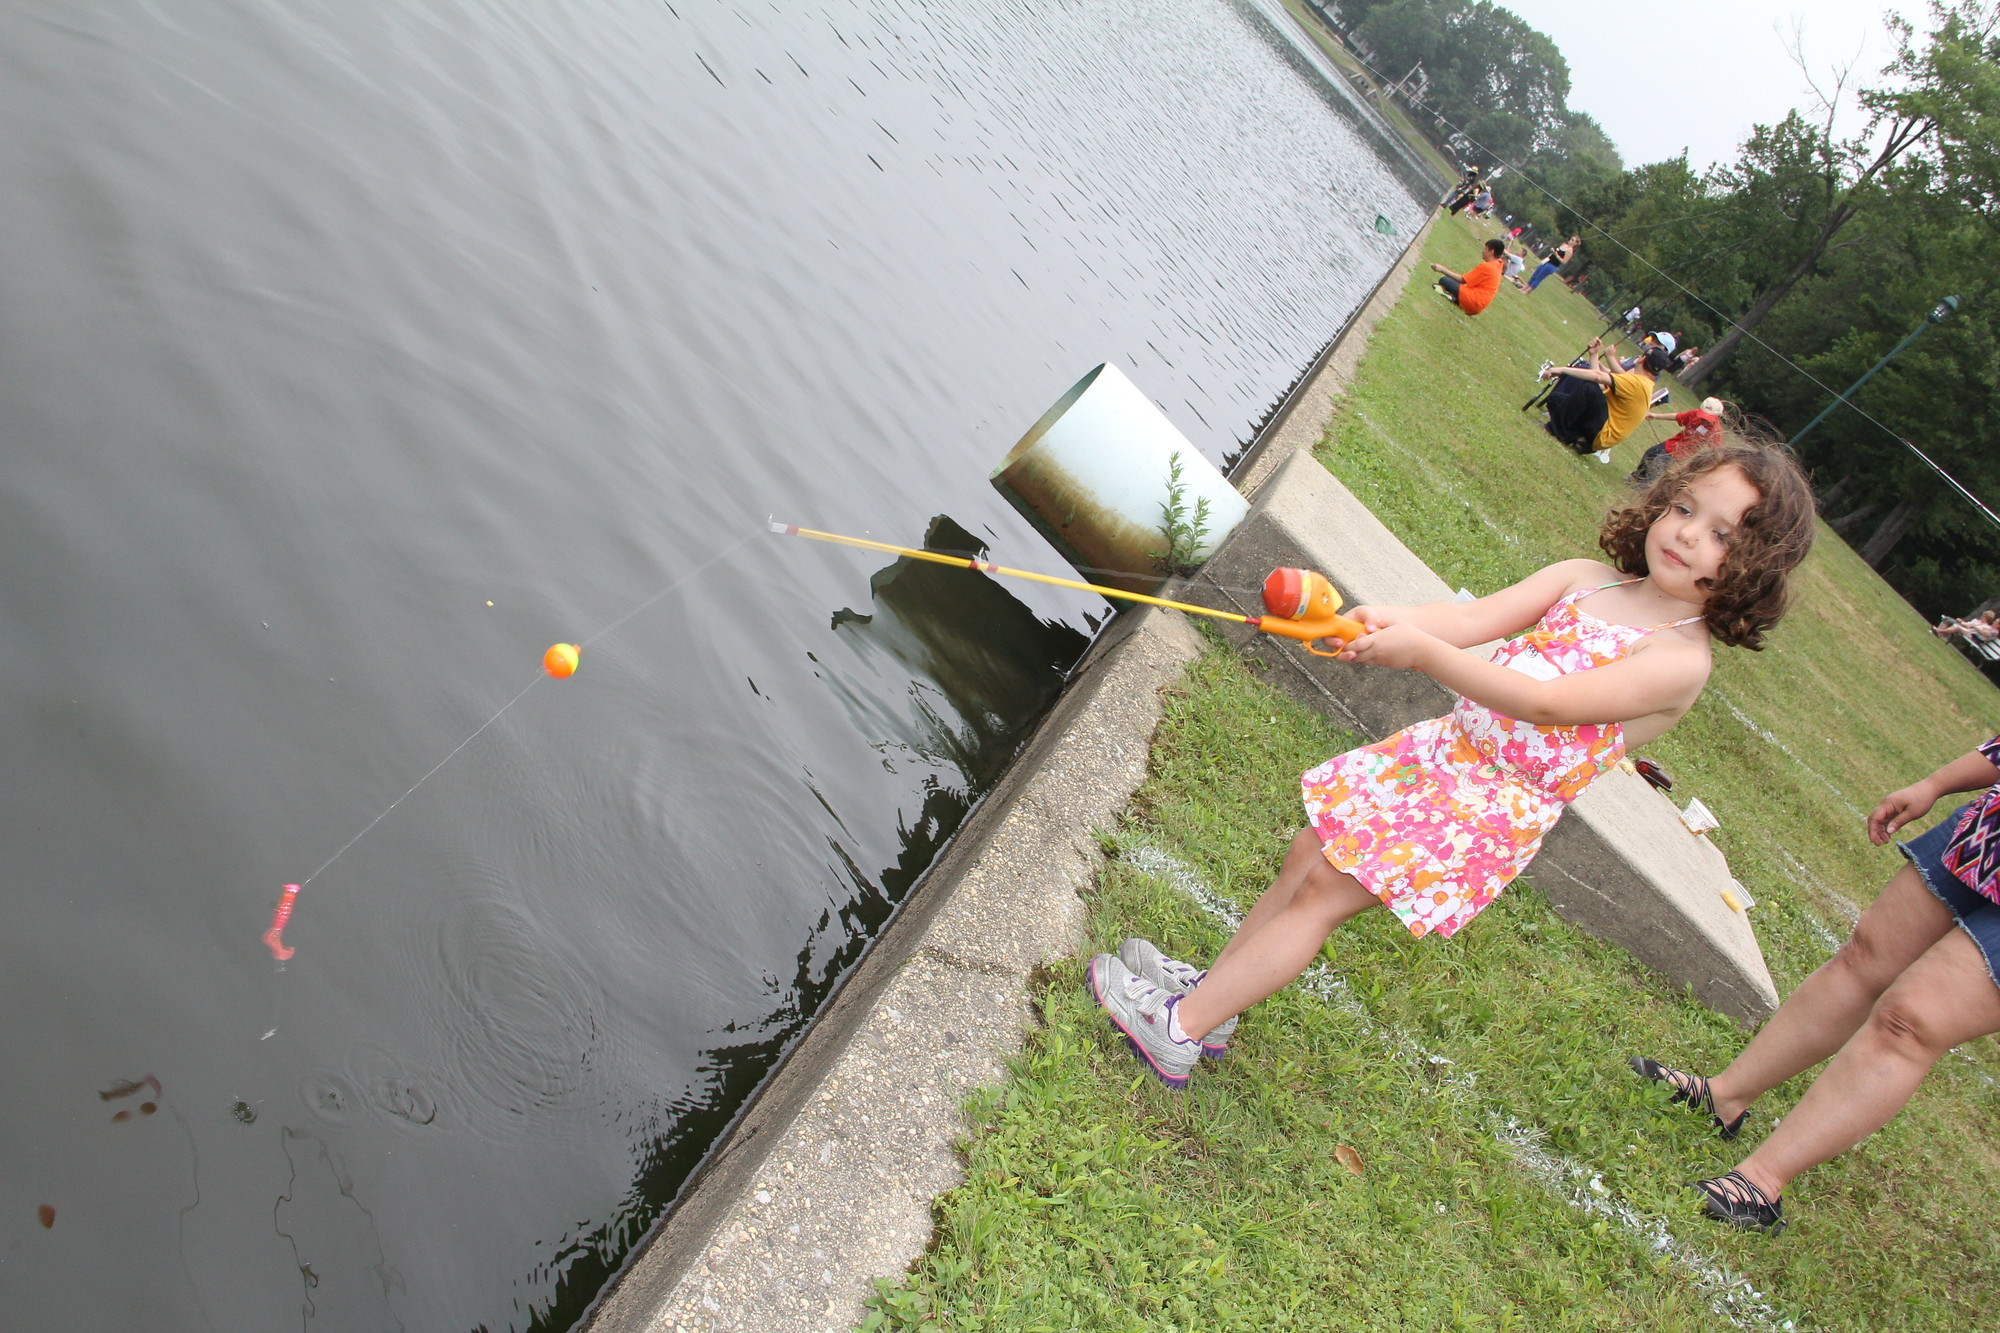 Charlotte Prial, 4, has a great time on her first fishing trip at Hendrickson Park last Sunday afternoon.